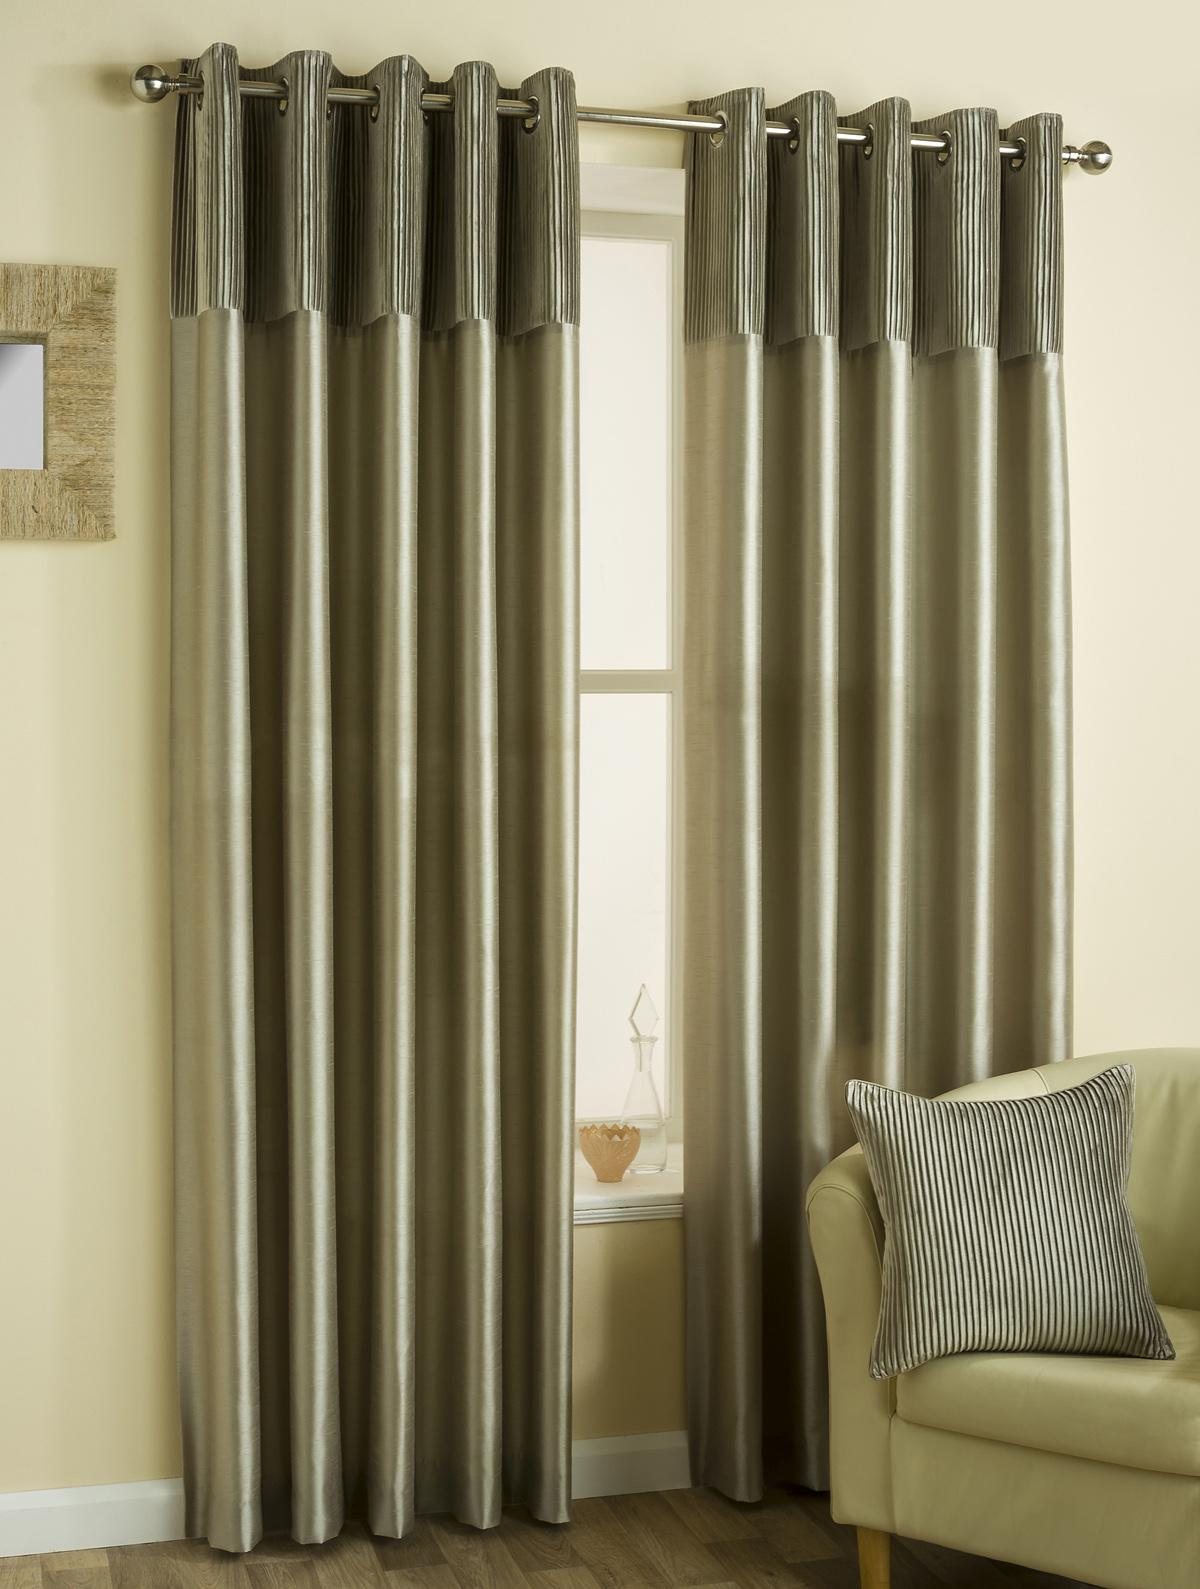 Mink Classic Border Ready Made Lined Eyelet Curtains